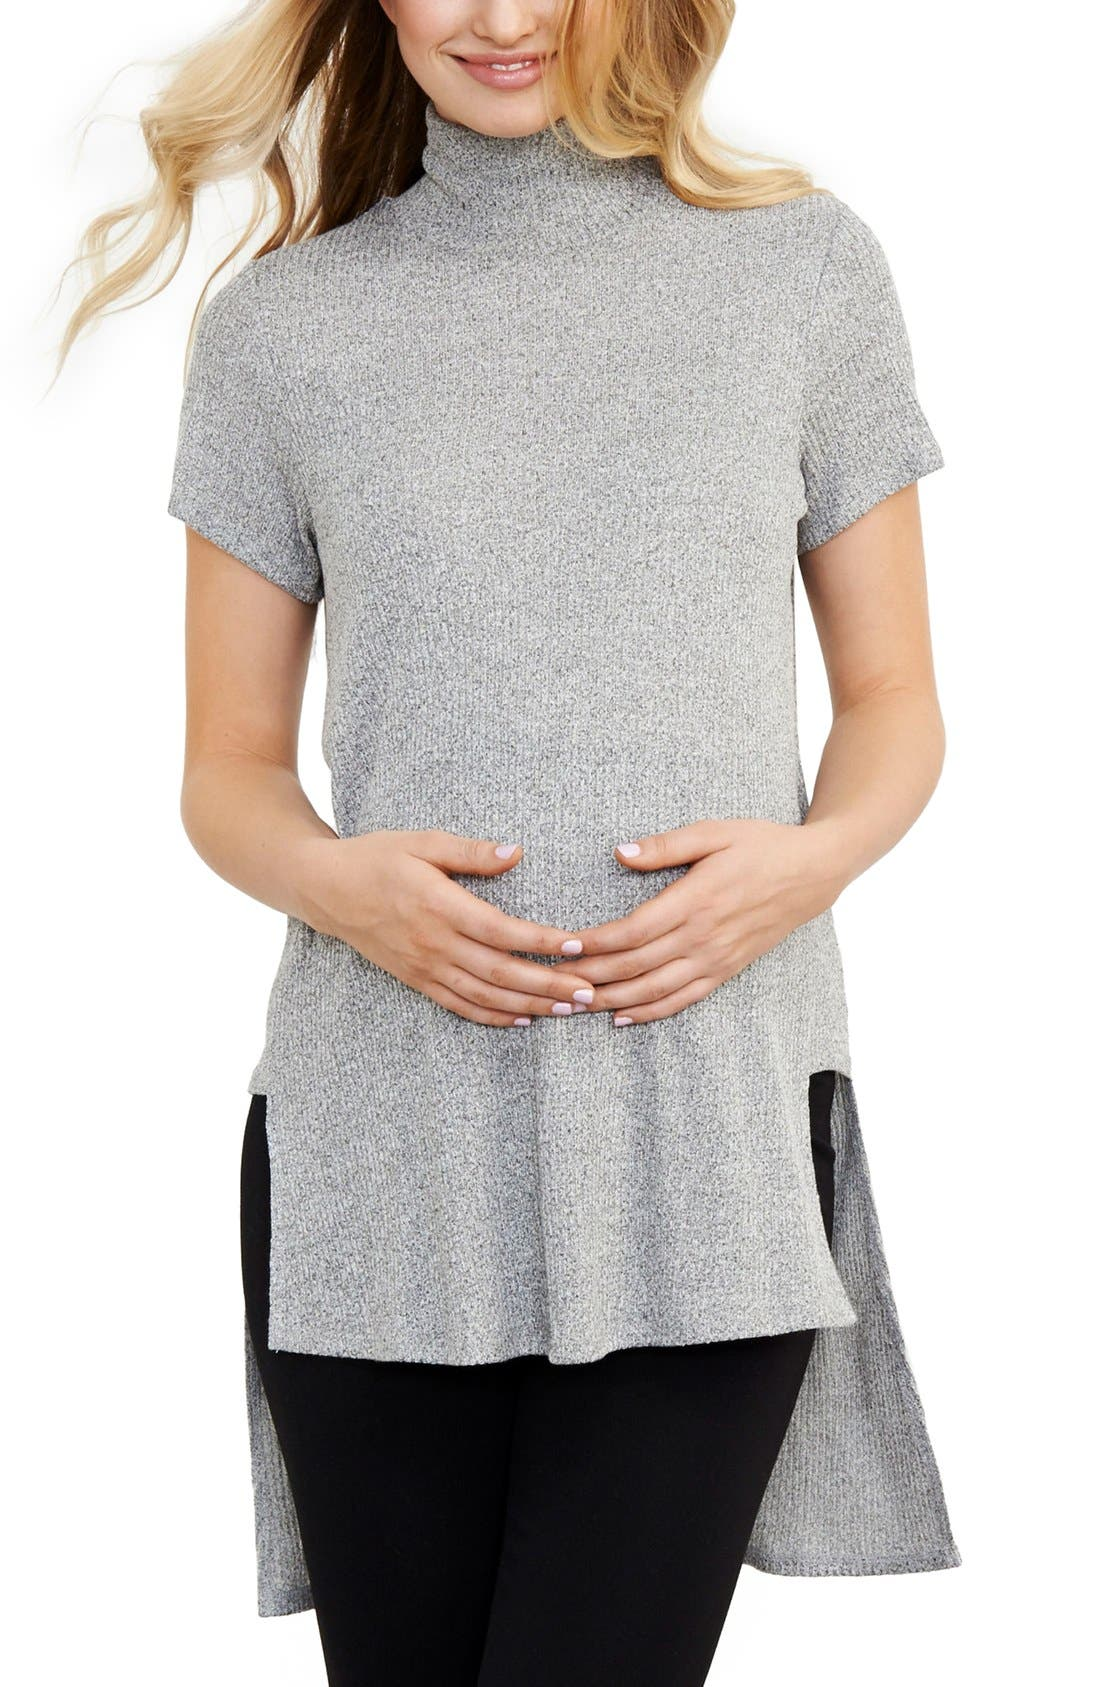 MATERNAL AMERICA Turtleneck High/Low Maternity Top